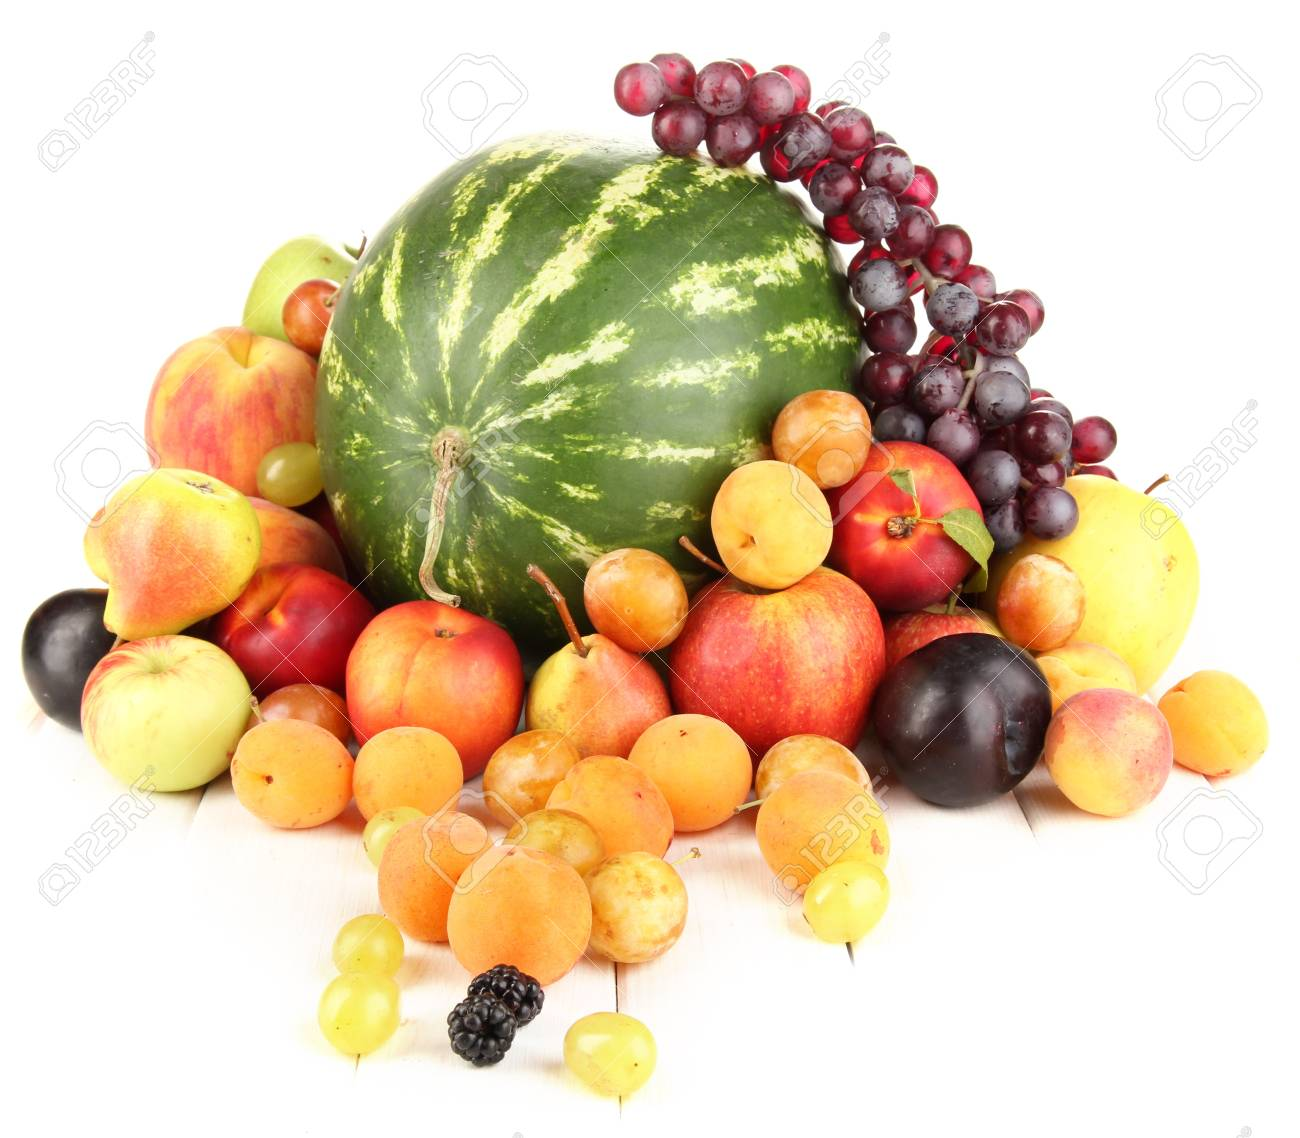 Still life of fruit on wooden table isolated on white Stock Photo - 15600941